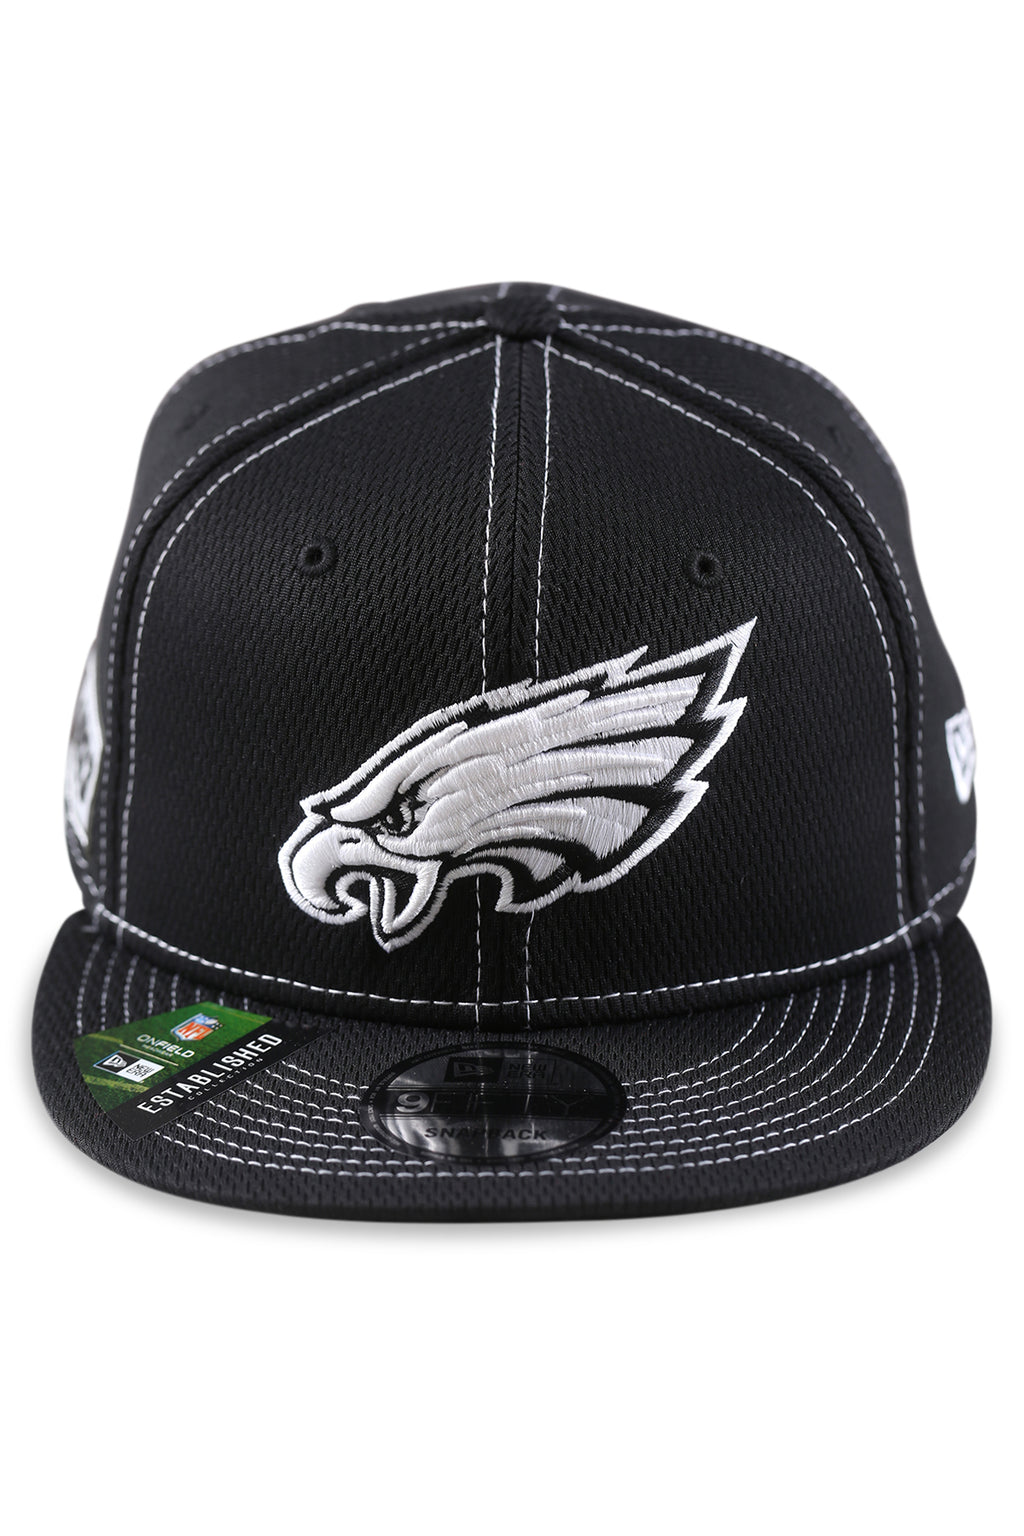 New Era 950 Philadelphia Eagles NFL Sideline Black Snapback